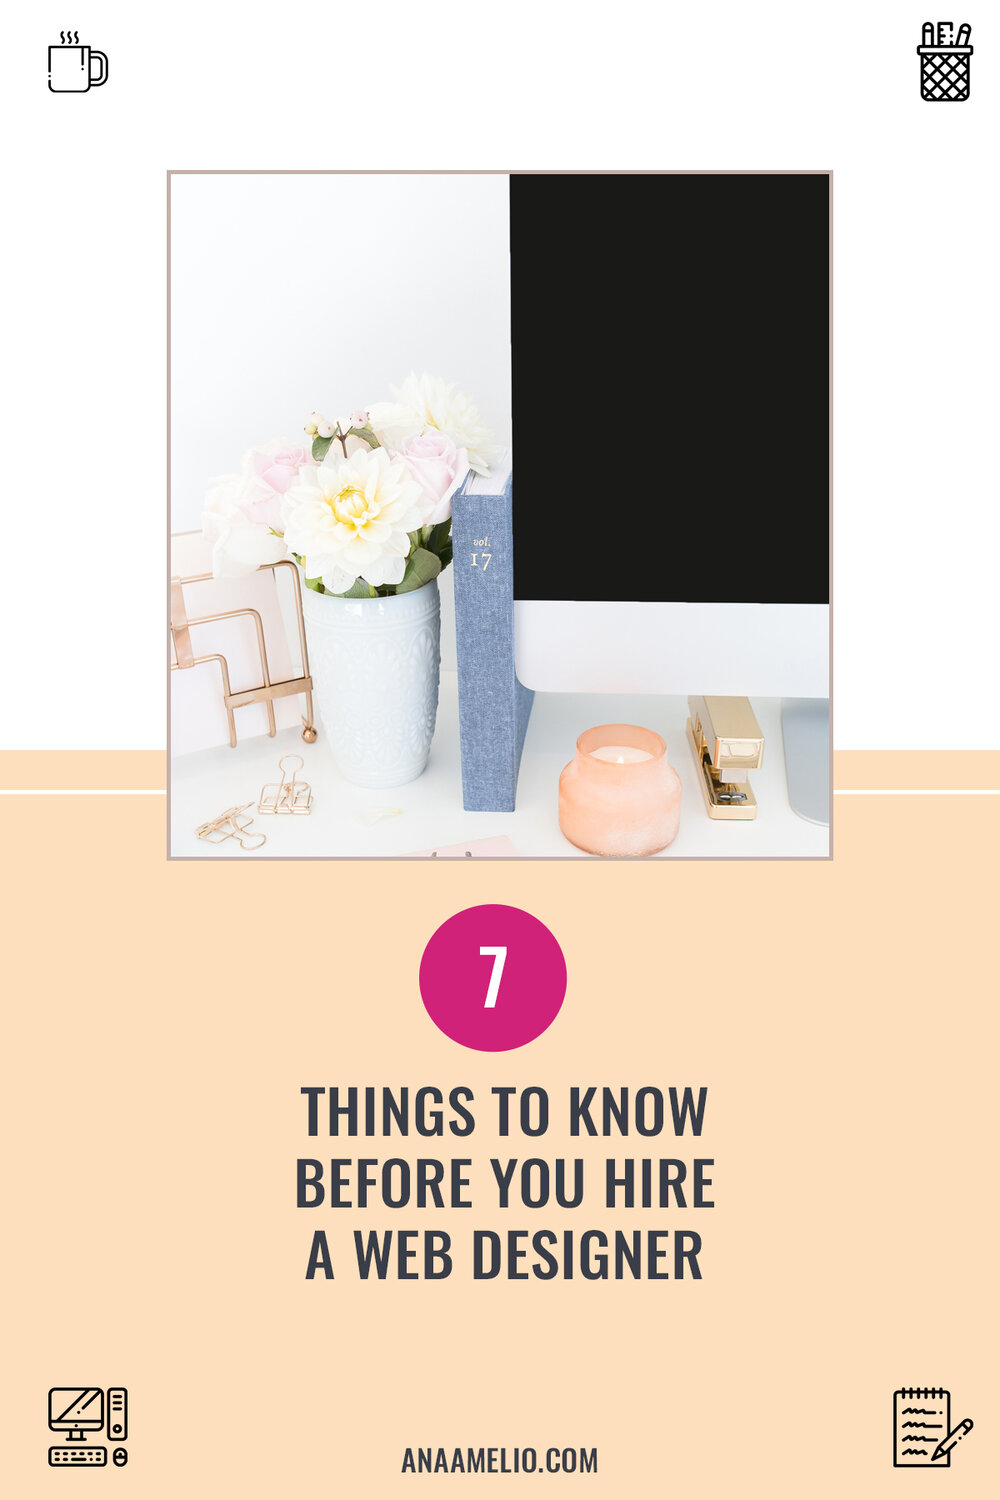 Learn 7 crucial things you need to know before you hire a web designer. #brandedbossbabe #hireawebdesigner #websitedesign #squarespace